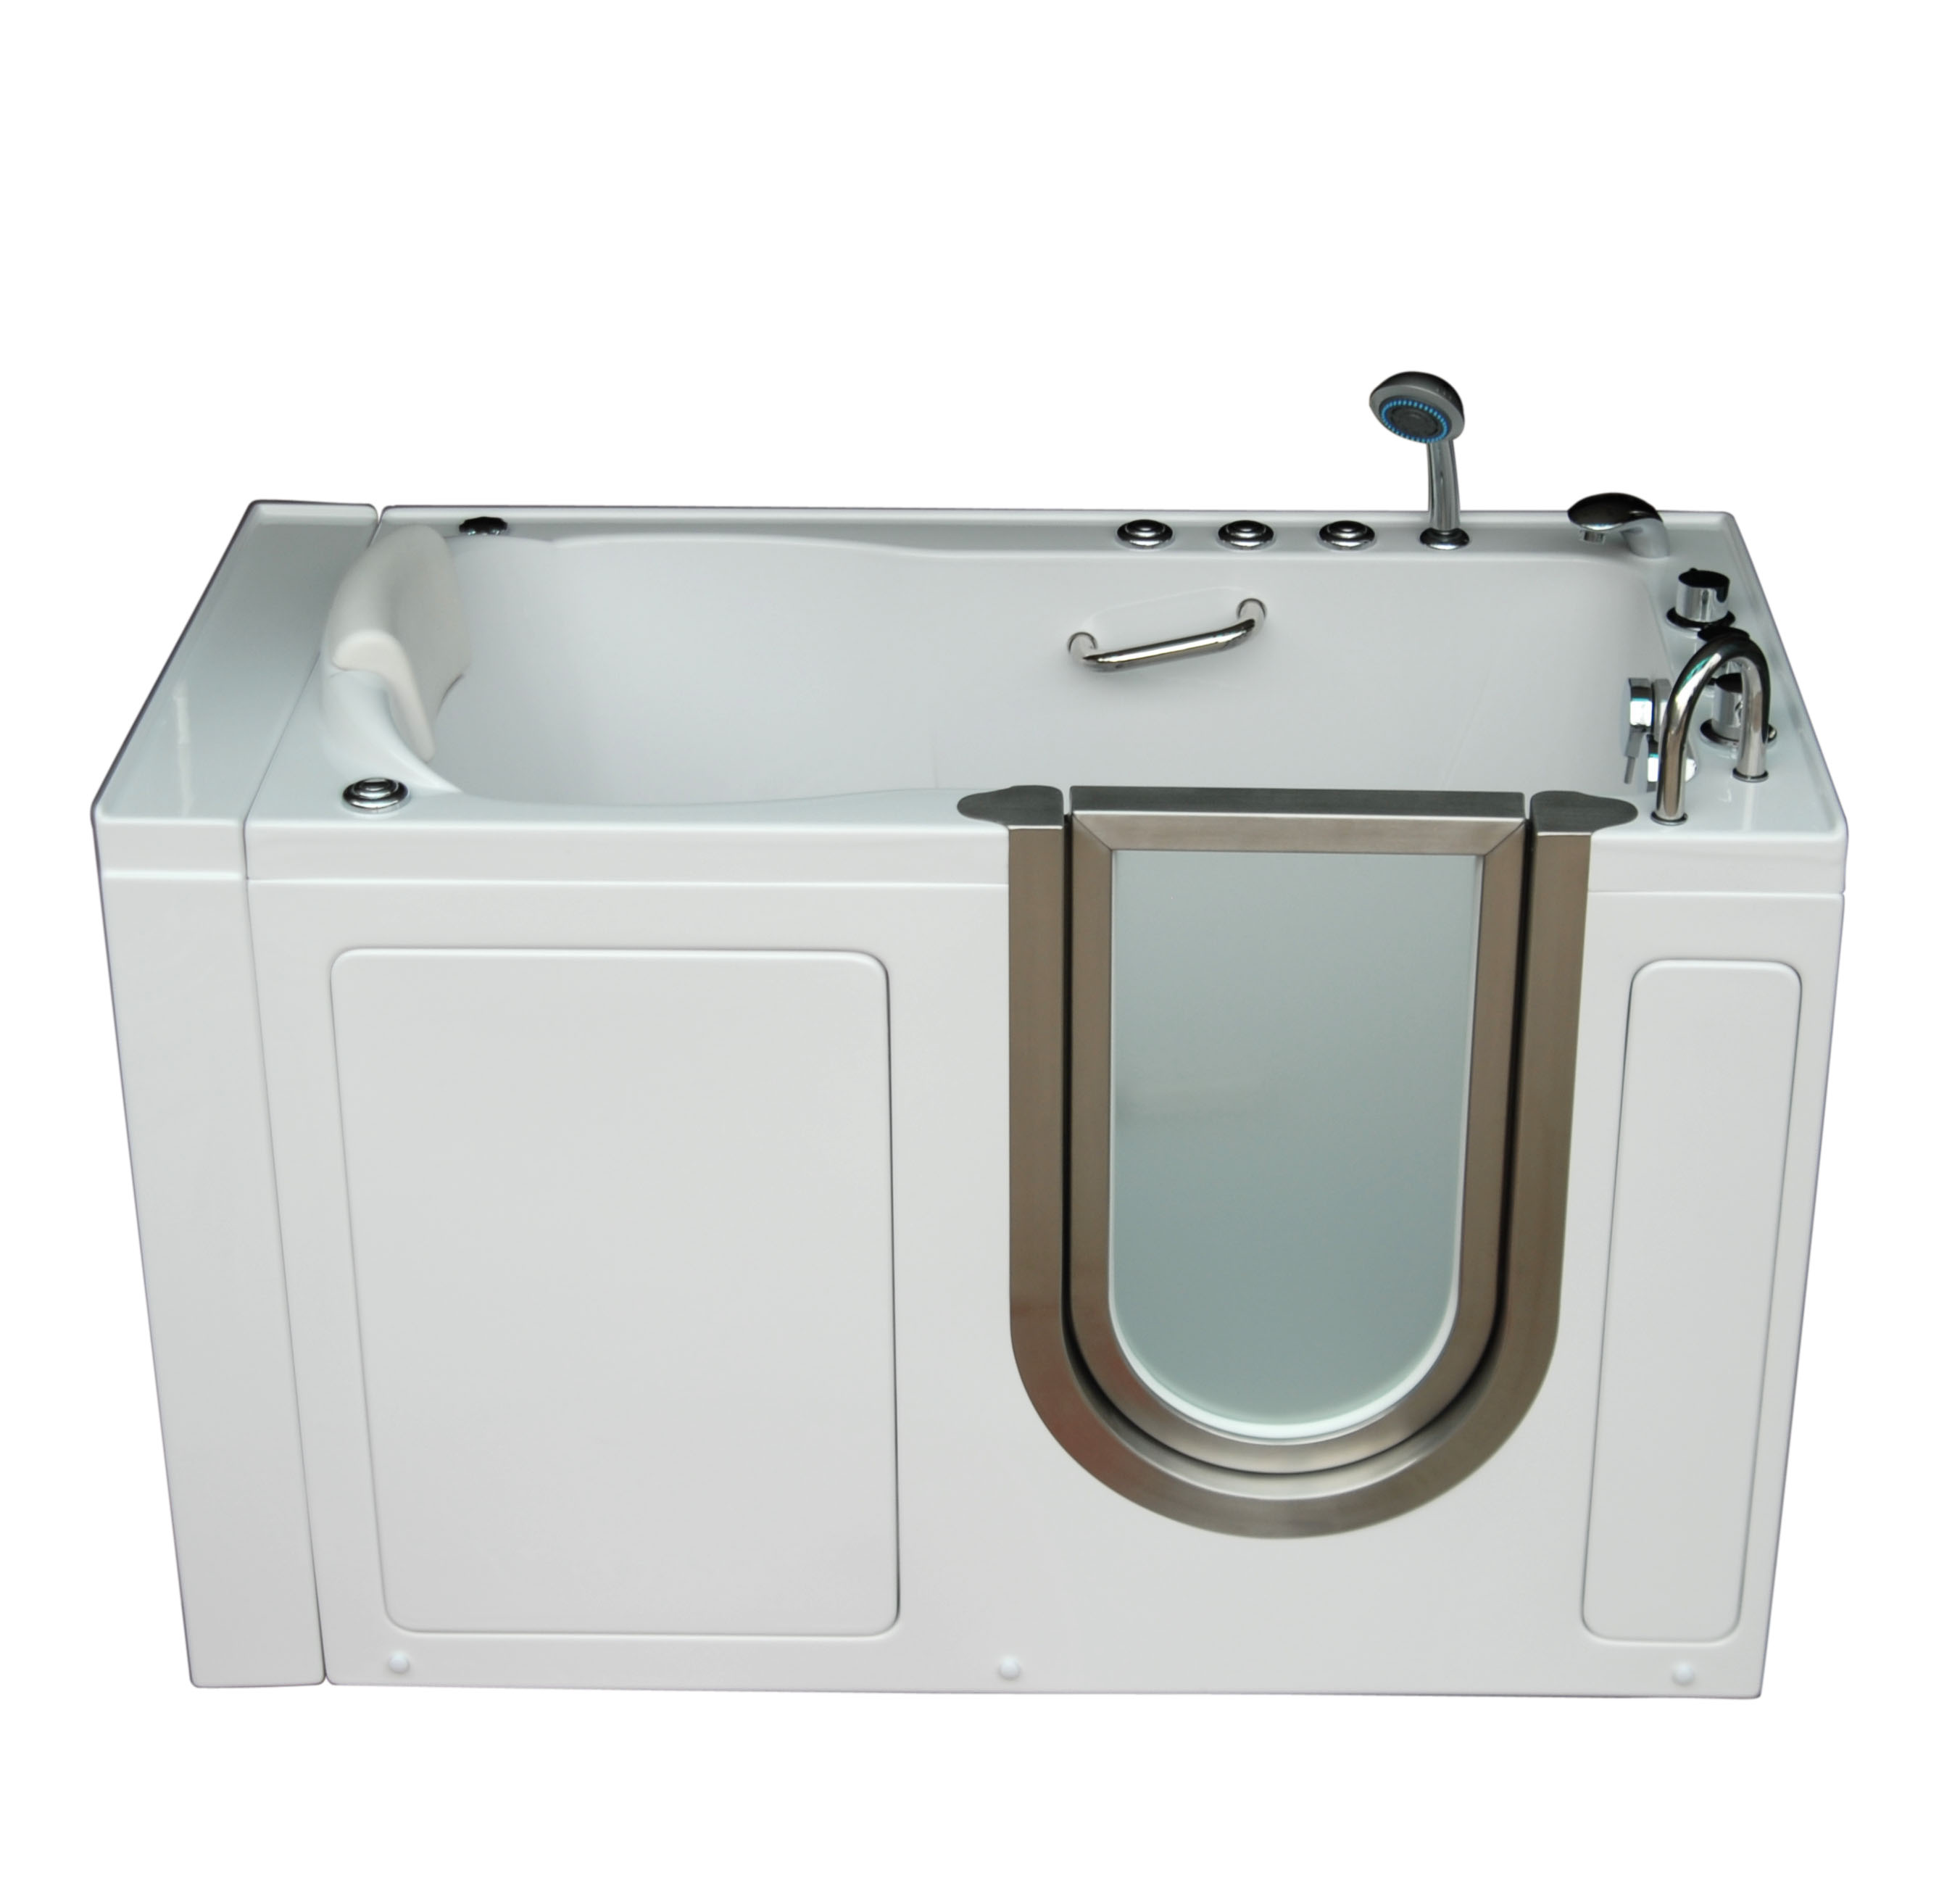 low premier bathtub aqua spas prices lowes shower tubs with walking tub compact combo step large accessible walkin enclosure safe bathtubs refinishing and in walk safestep